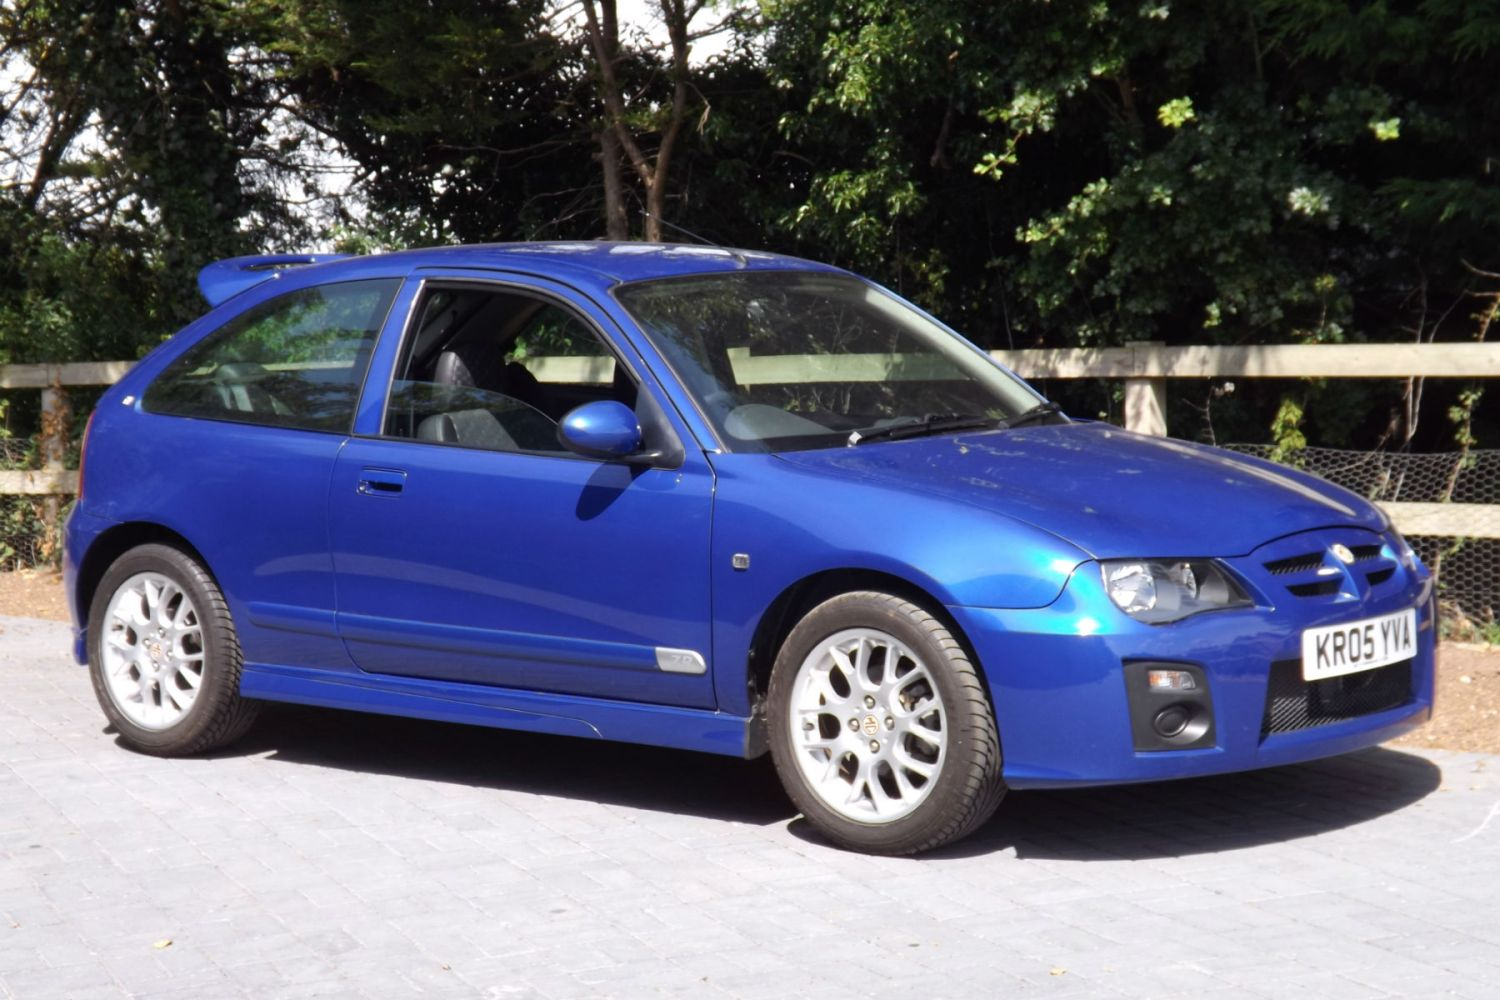 This 2005 MG ZR has covered just 759 miles from new